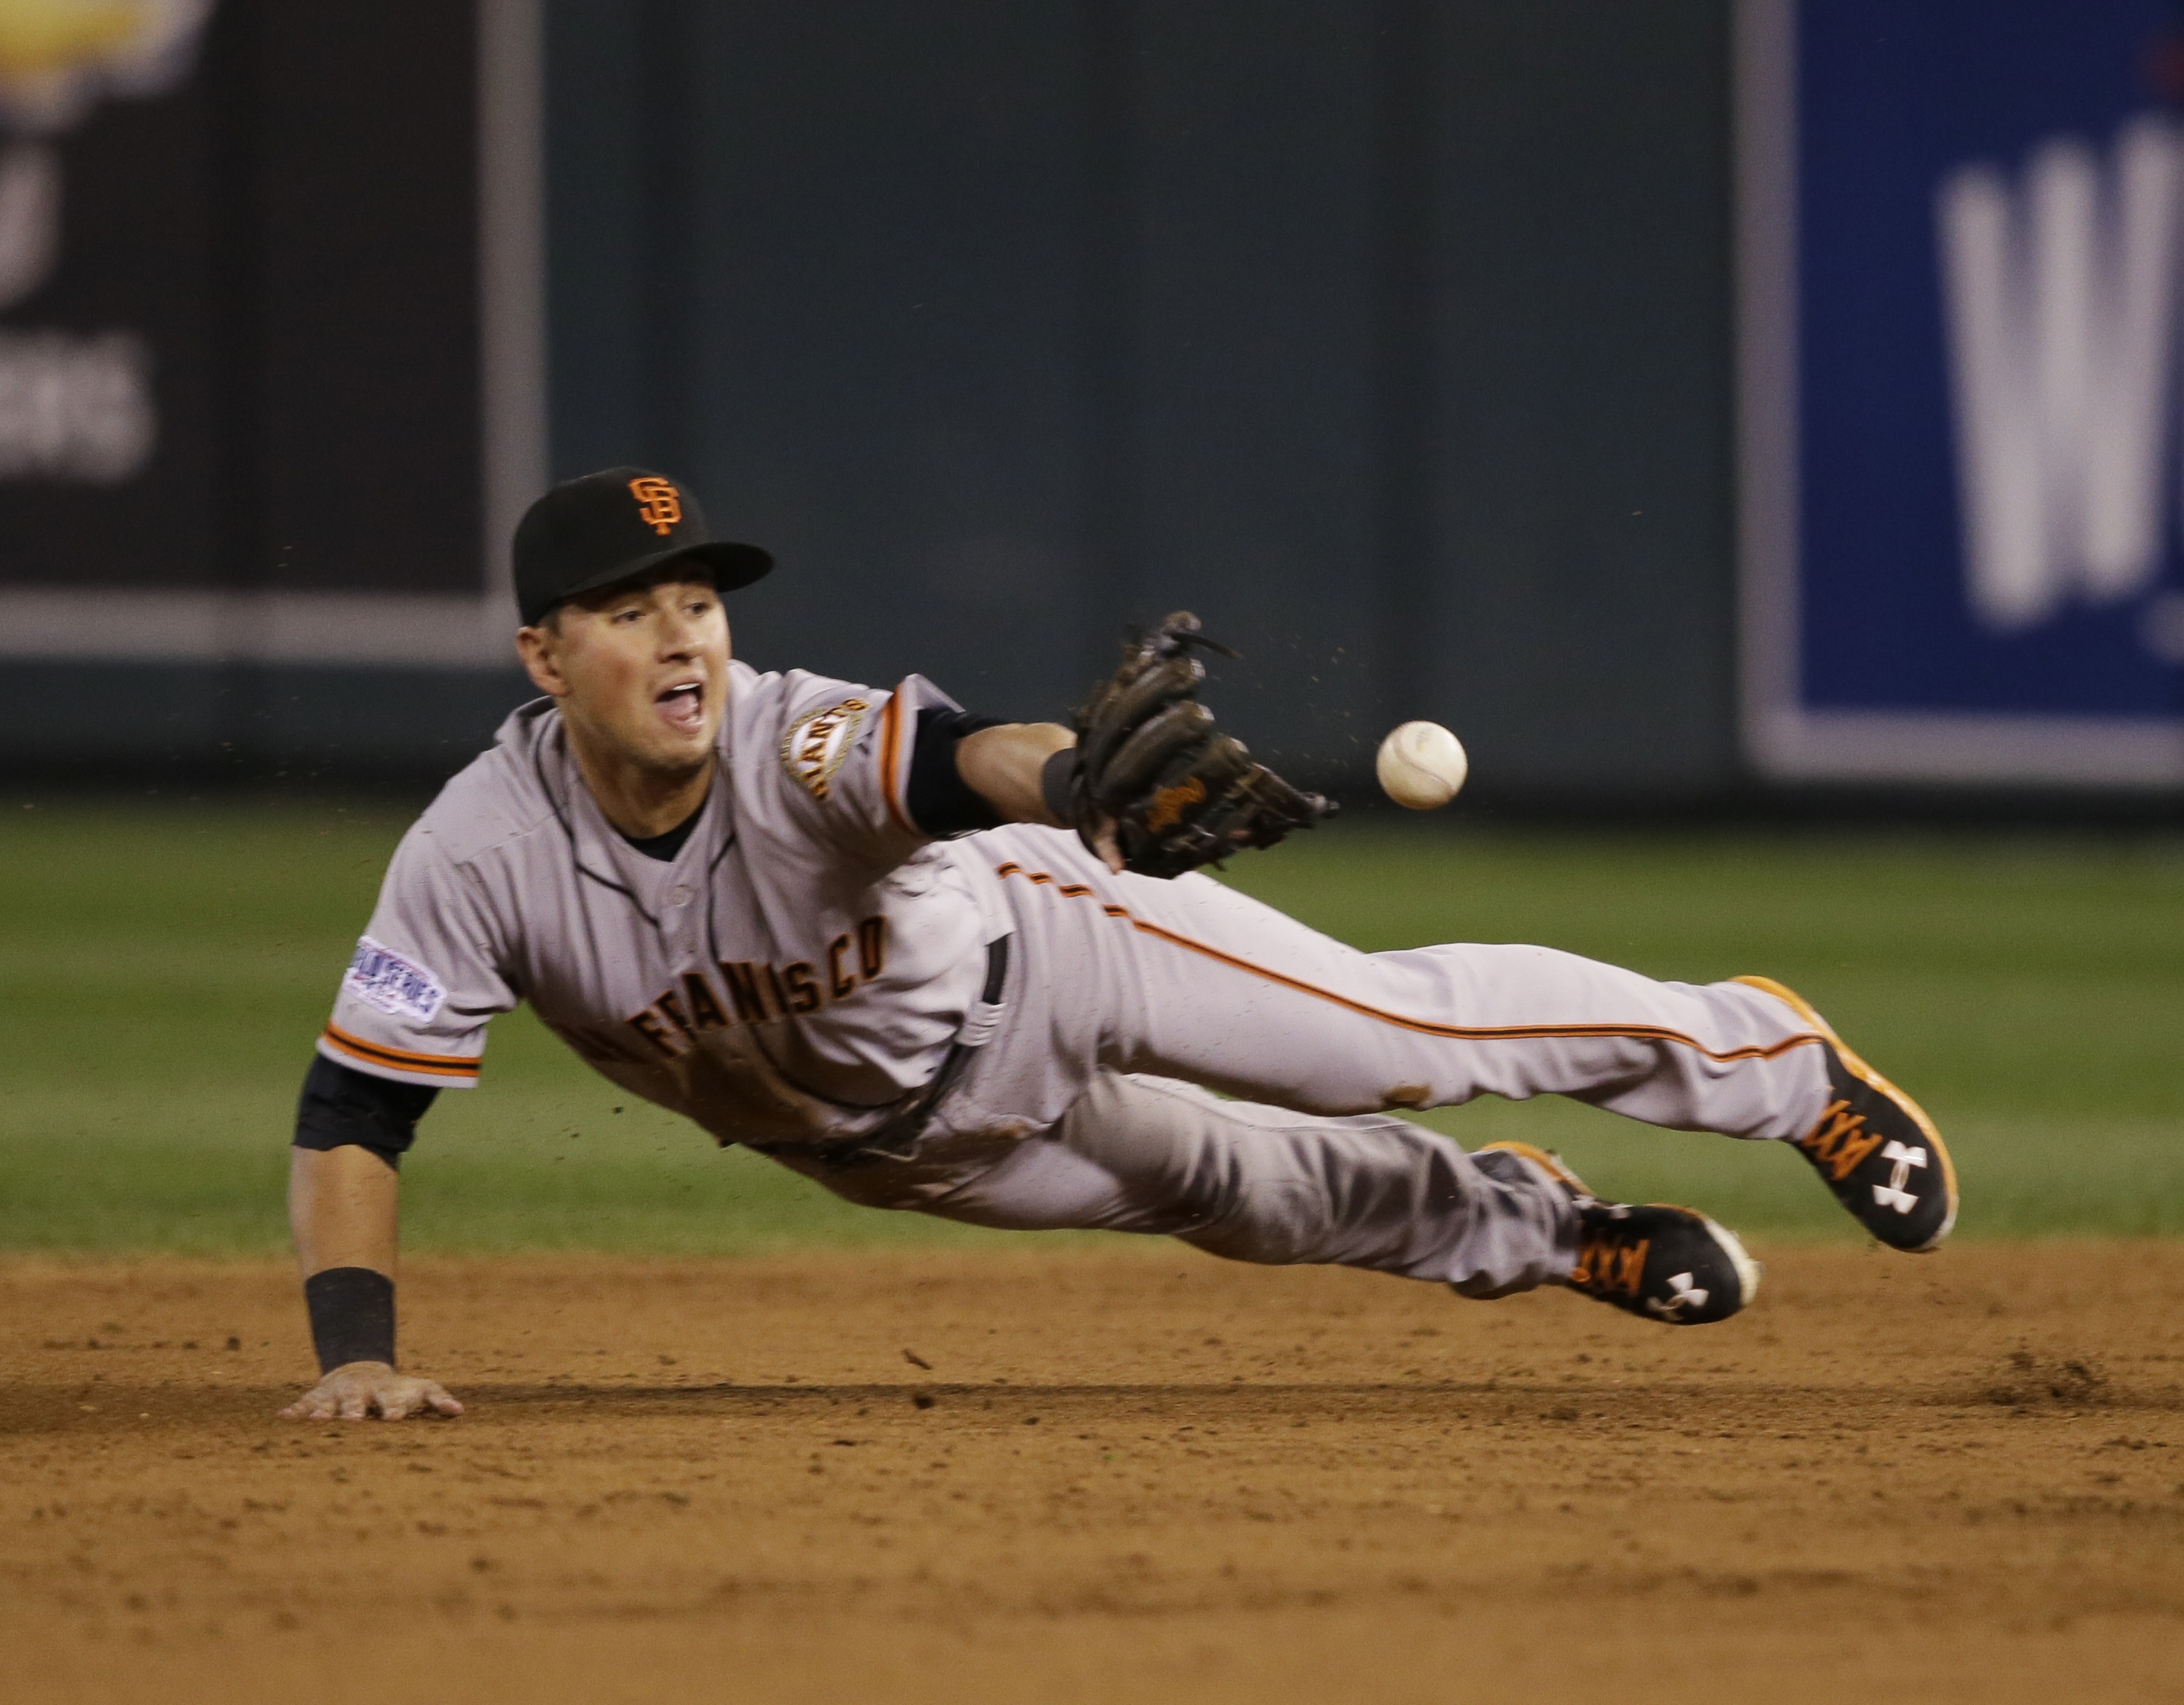 Giants second baseman Joe Panik flips the ball to Brandon Crawford to start a double play that needed a replay.